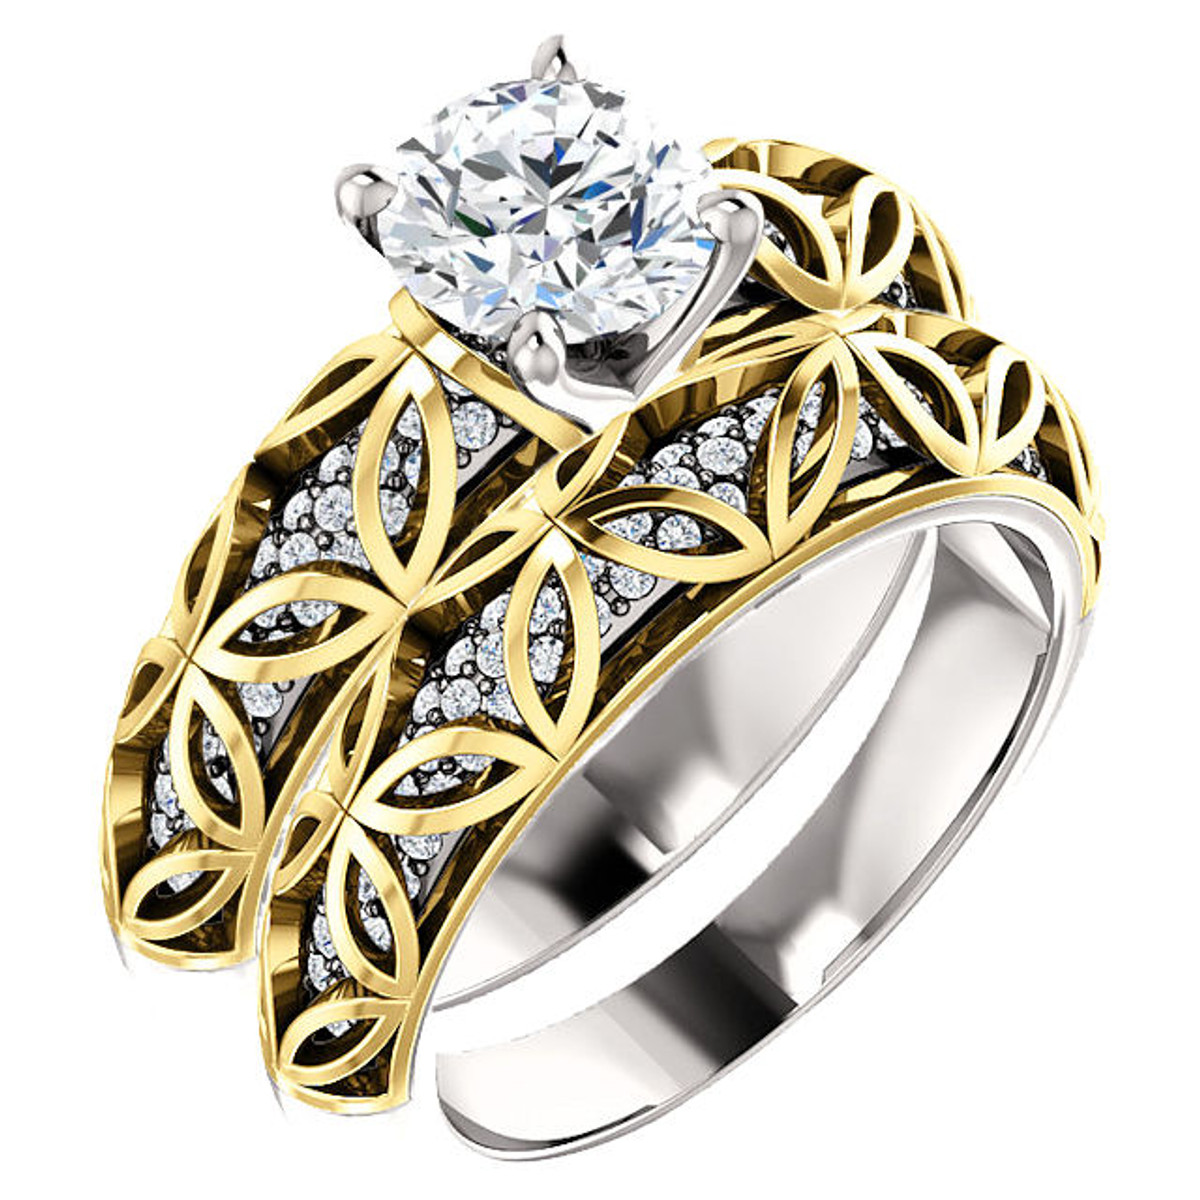 Two-Tone Diamond Bridal Set